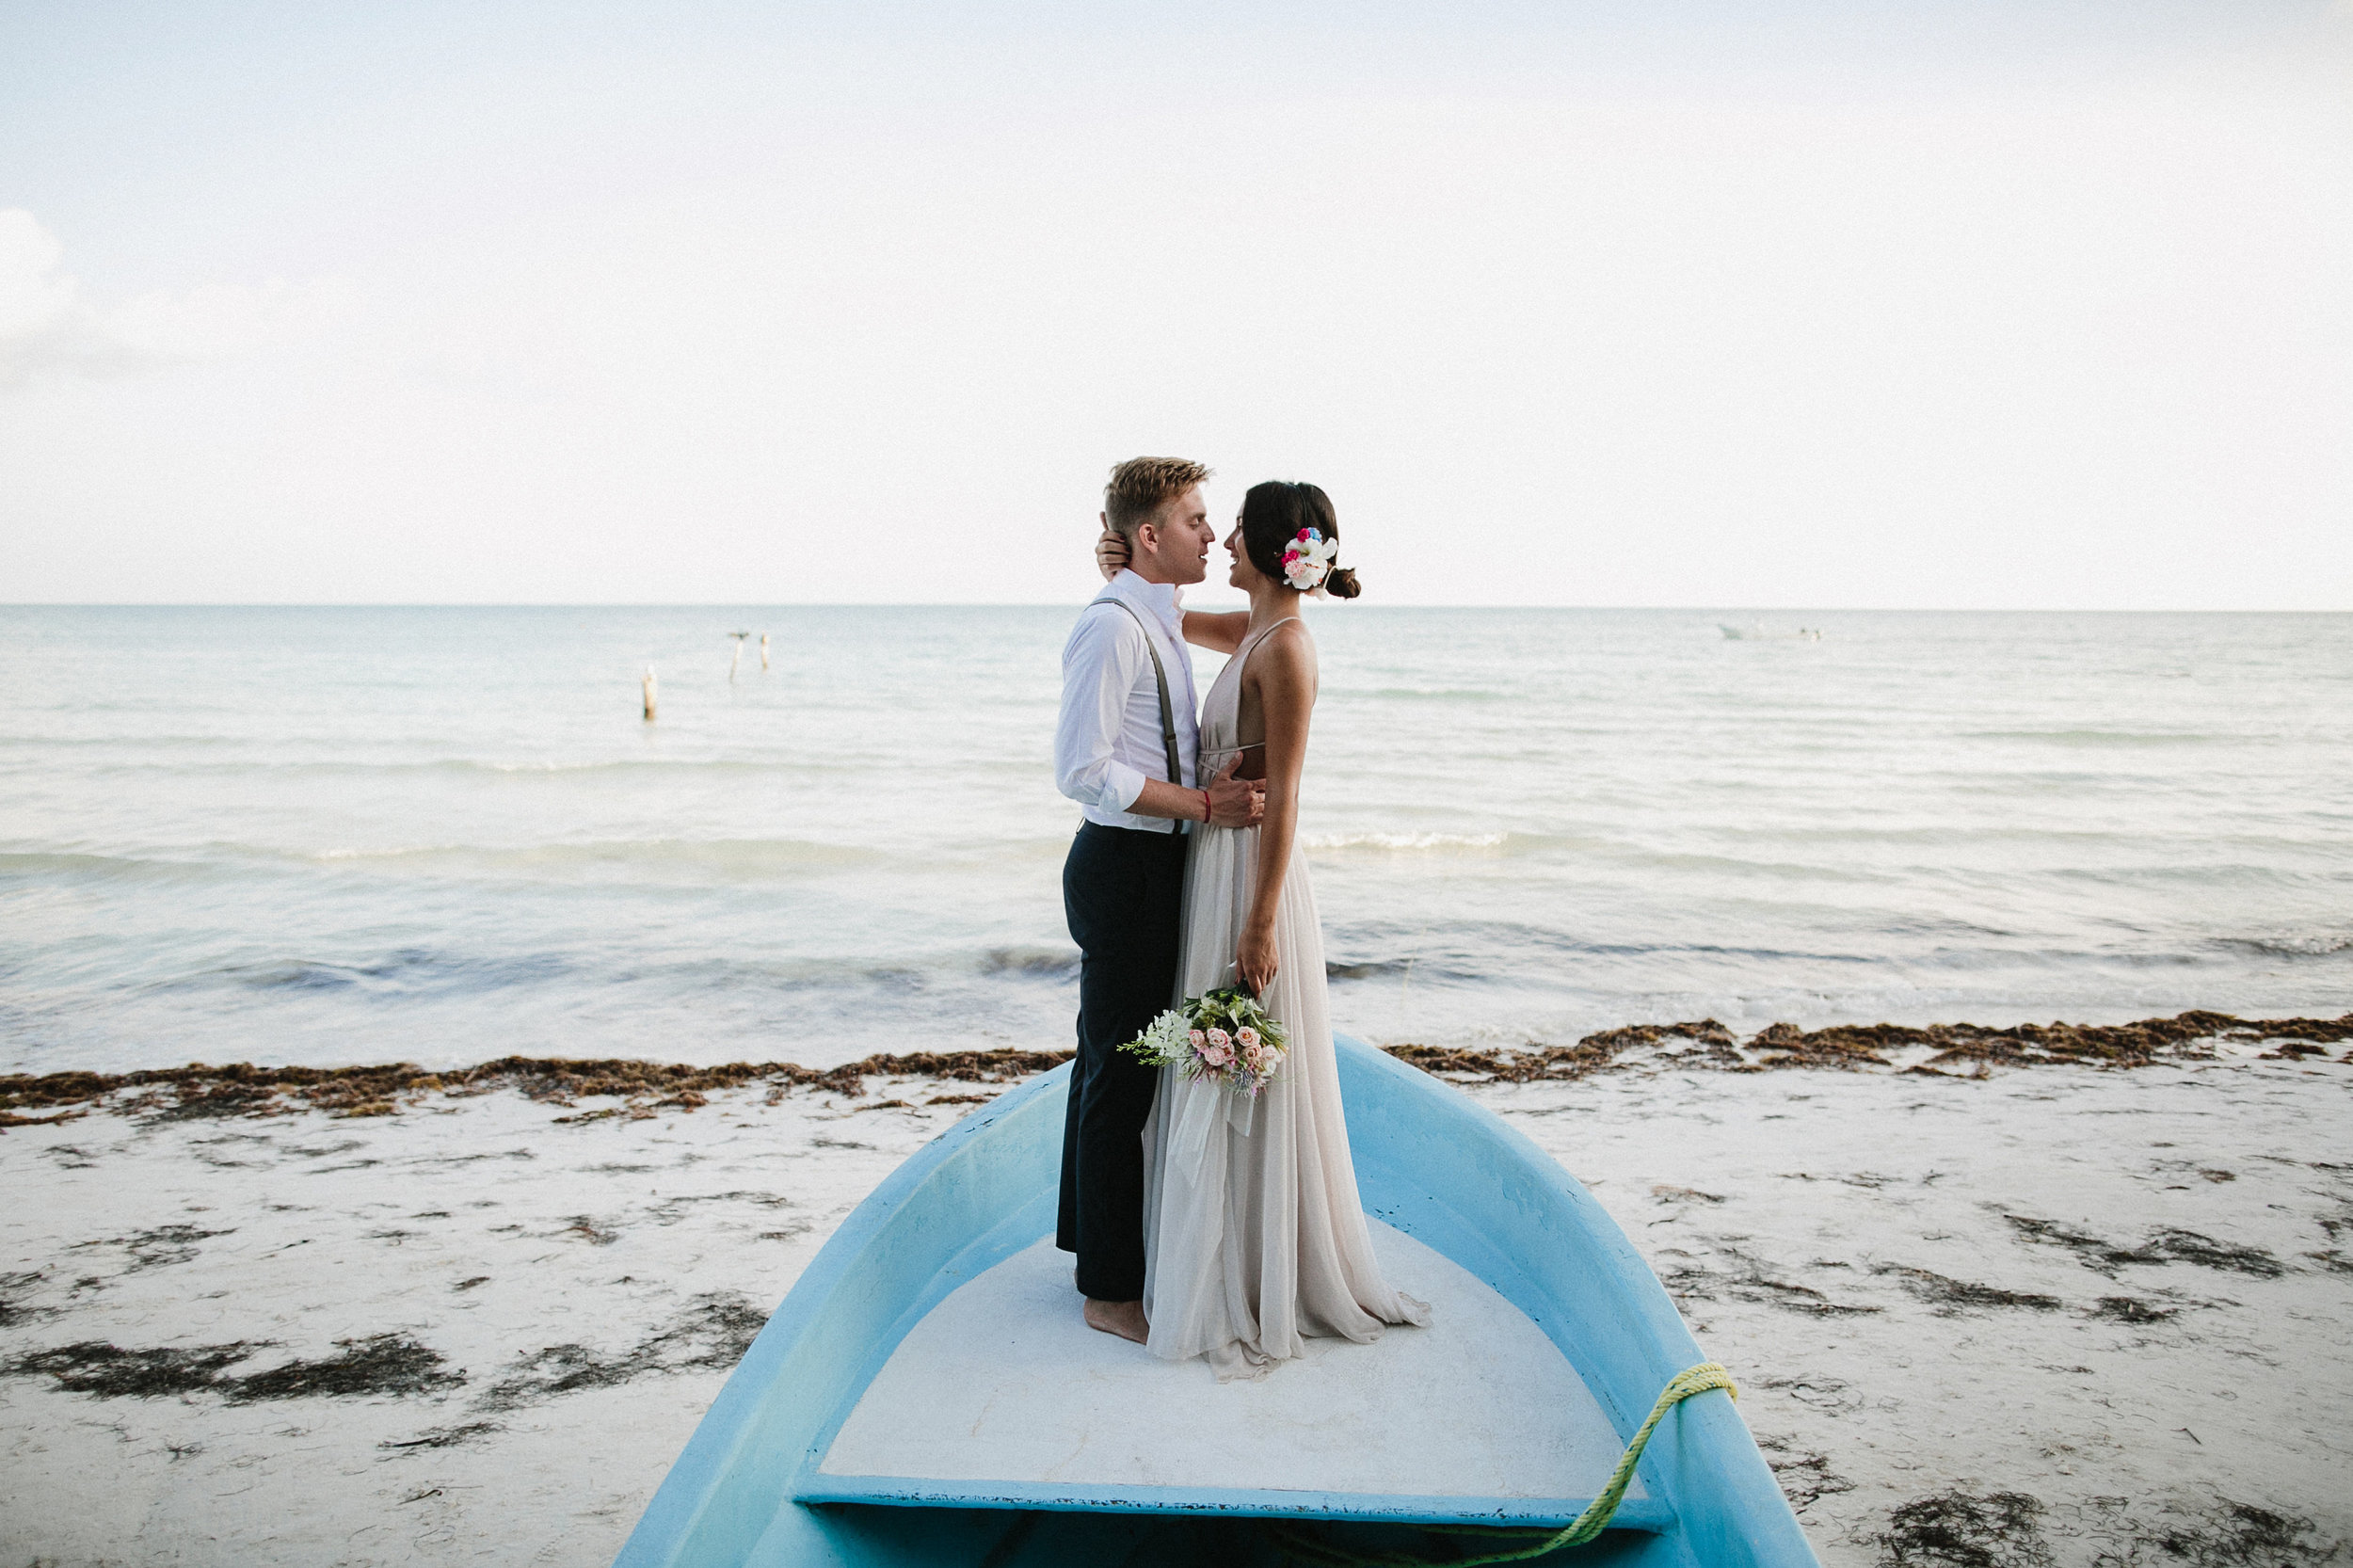 alfonso_flores_destination_wedding_photographer_holbox_nomada_workshop-166.jpg